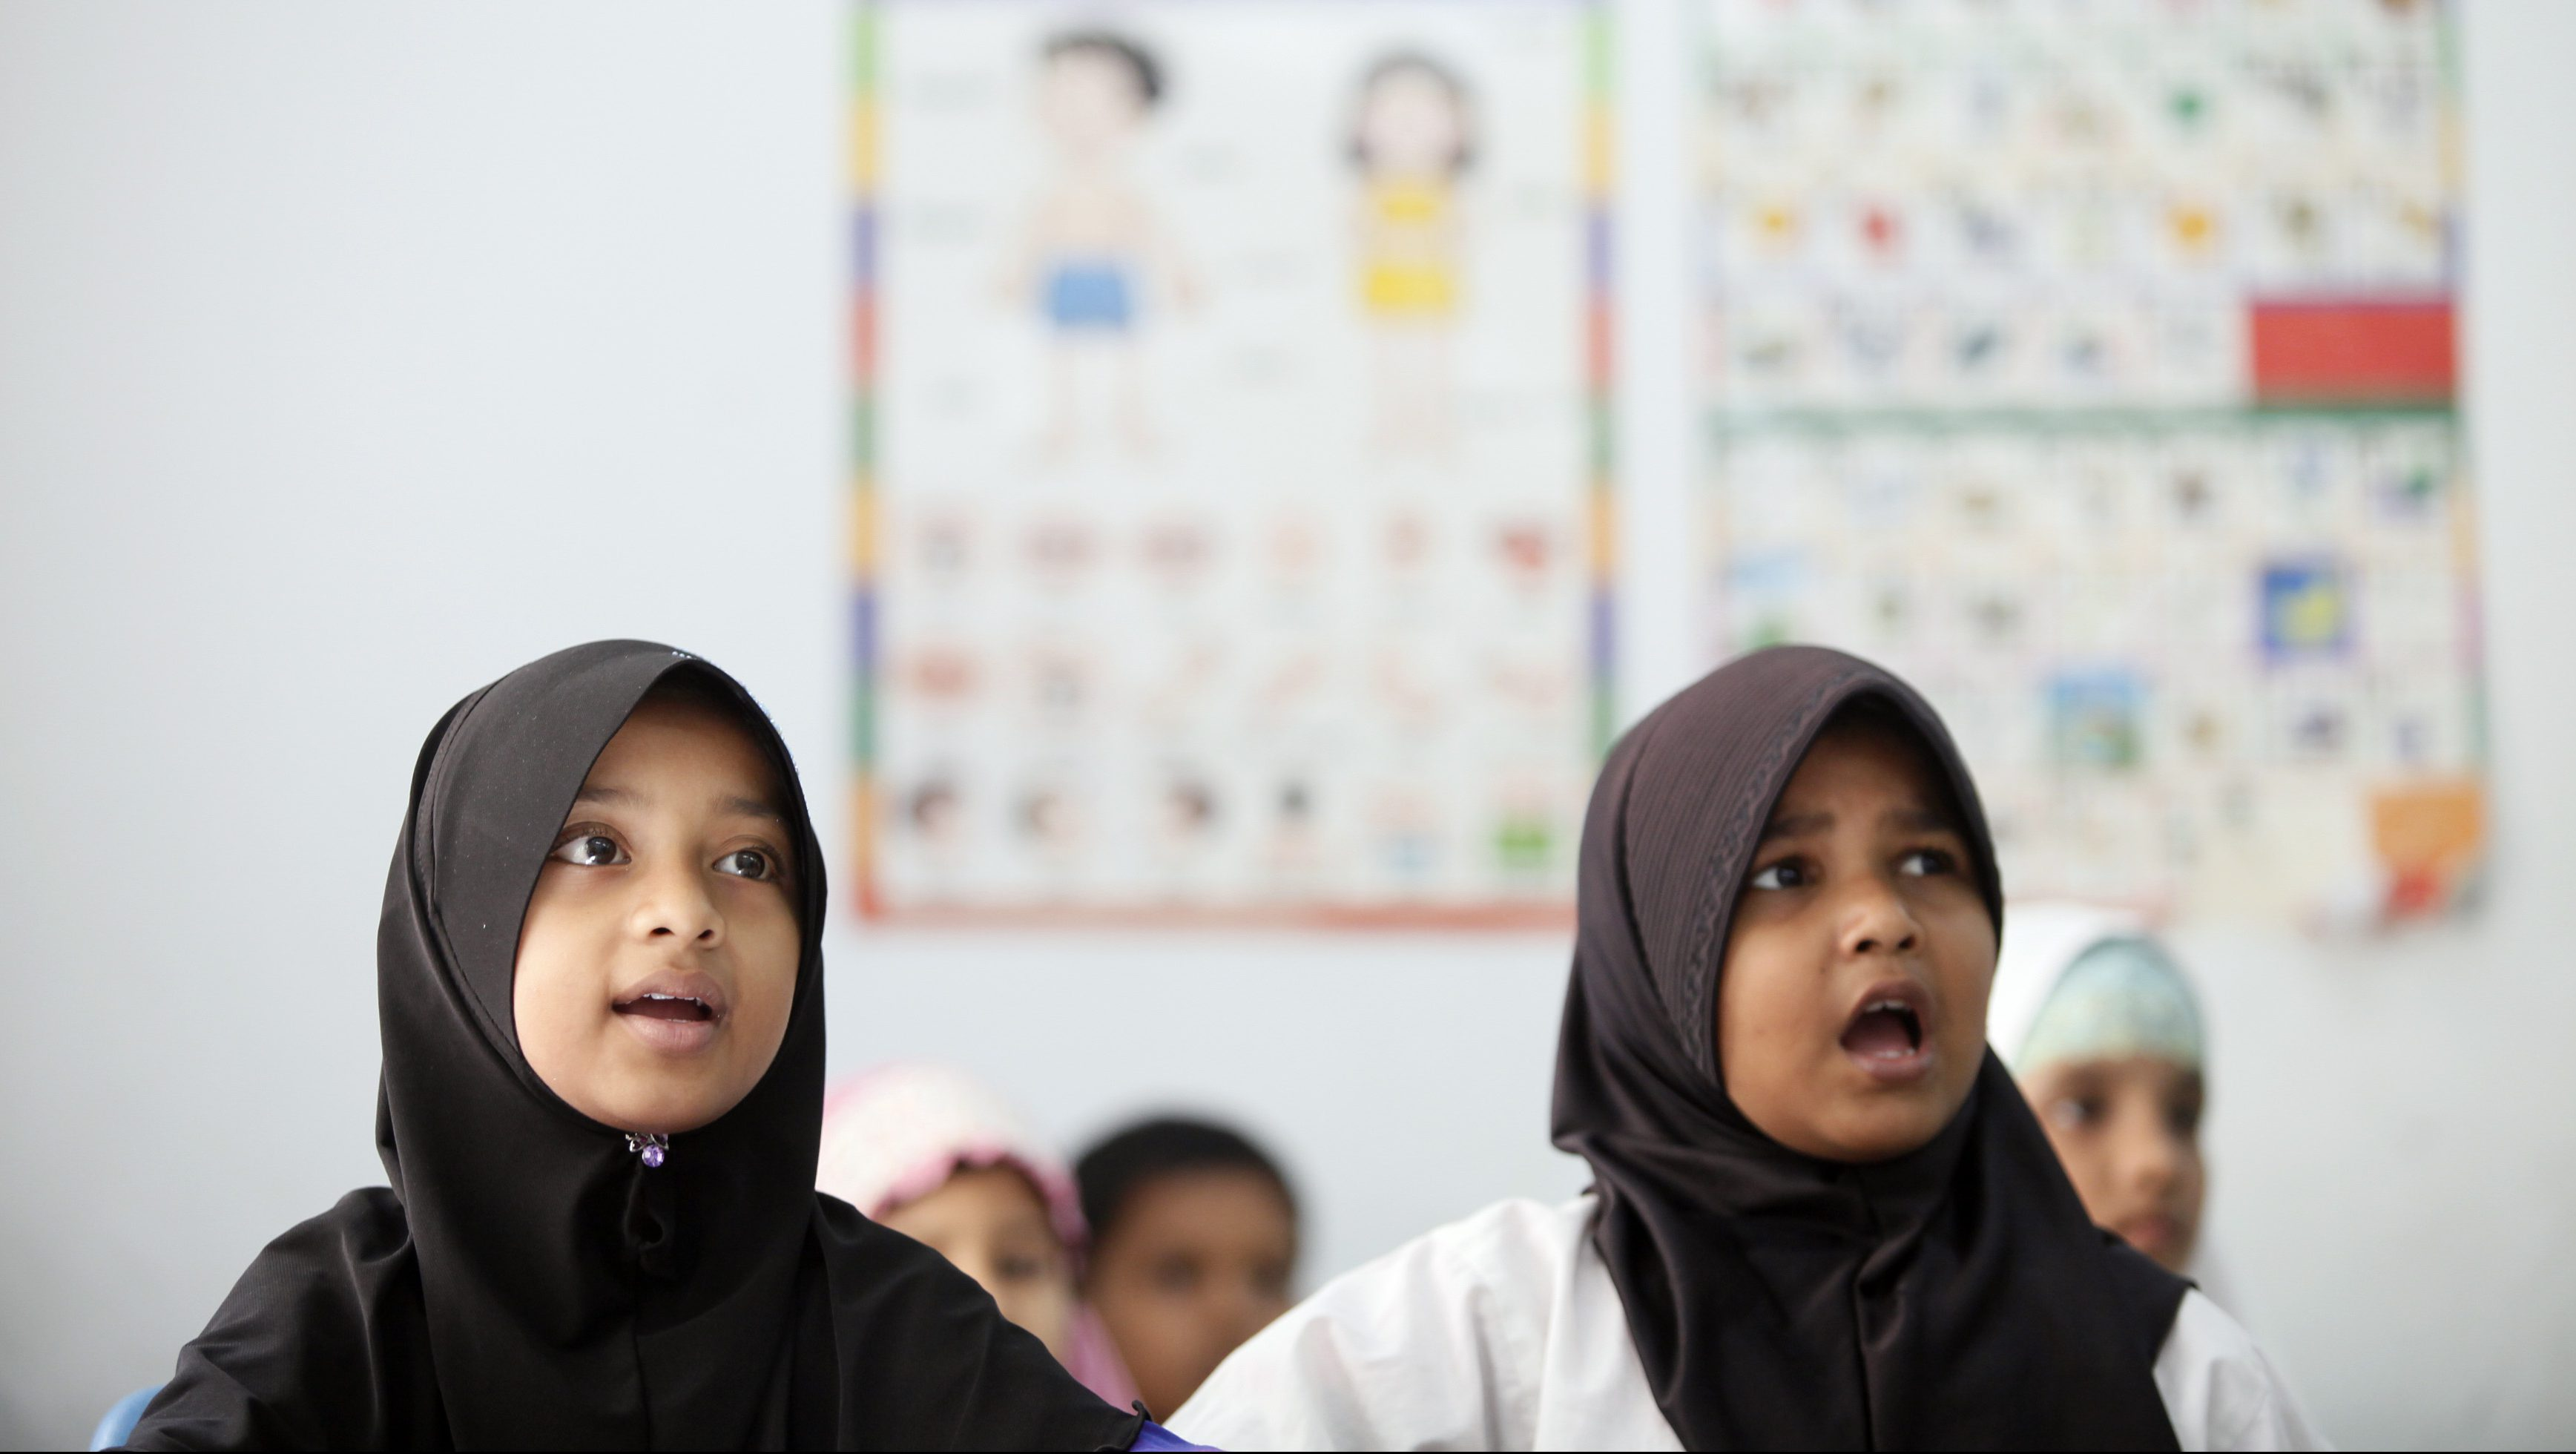 Young Myanmar refugees from the Rohingya ethnic minority attend their English class in Kuala Lumpur in this August 16, 2011 file picture. In 1982 Myanmar passed a law which made it impossible for Rohingyas to get full citizenship. Many fled to Bangladesh in 1991 and 1992 following a government crackdown. Today, an estimated 800,000 live in Myanmar and up to 300,000 in Bangladesh. On August 25, 2011, the U.N. refugee agency UNHCR will launch an international campaign to highlight the plight of the estimated 12-15 million people worldwide who are not recognised as nationals by any country and become stateless. Picture taken August 16, 2011. To match STATELESS/ REUTERS/Bazuki Muhammad (MALAYSIA - Tags: SOCIETY POLITICS) - GF2E78N0N4X02